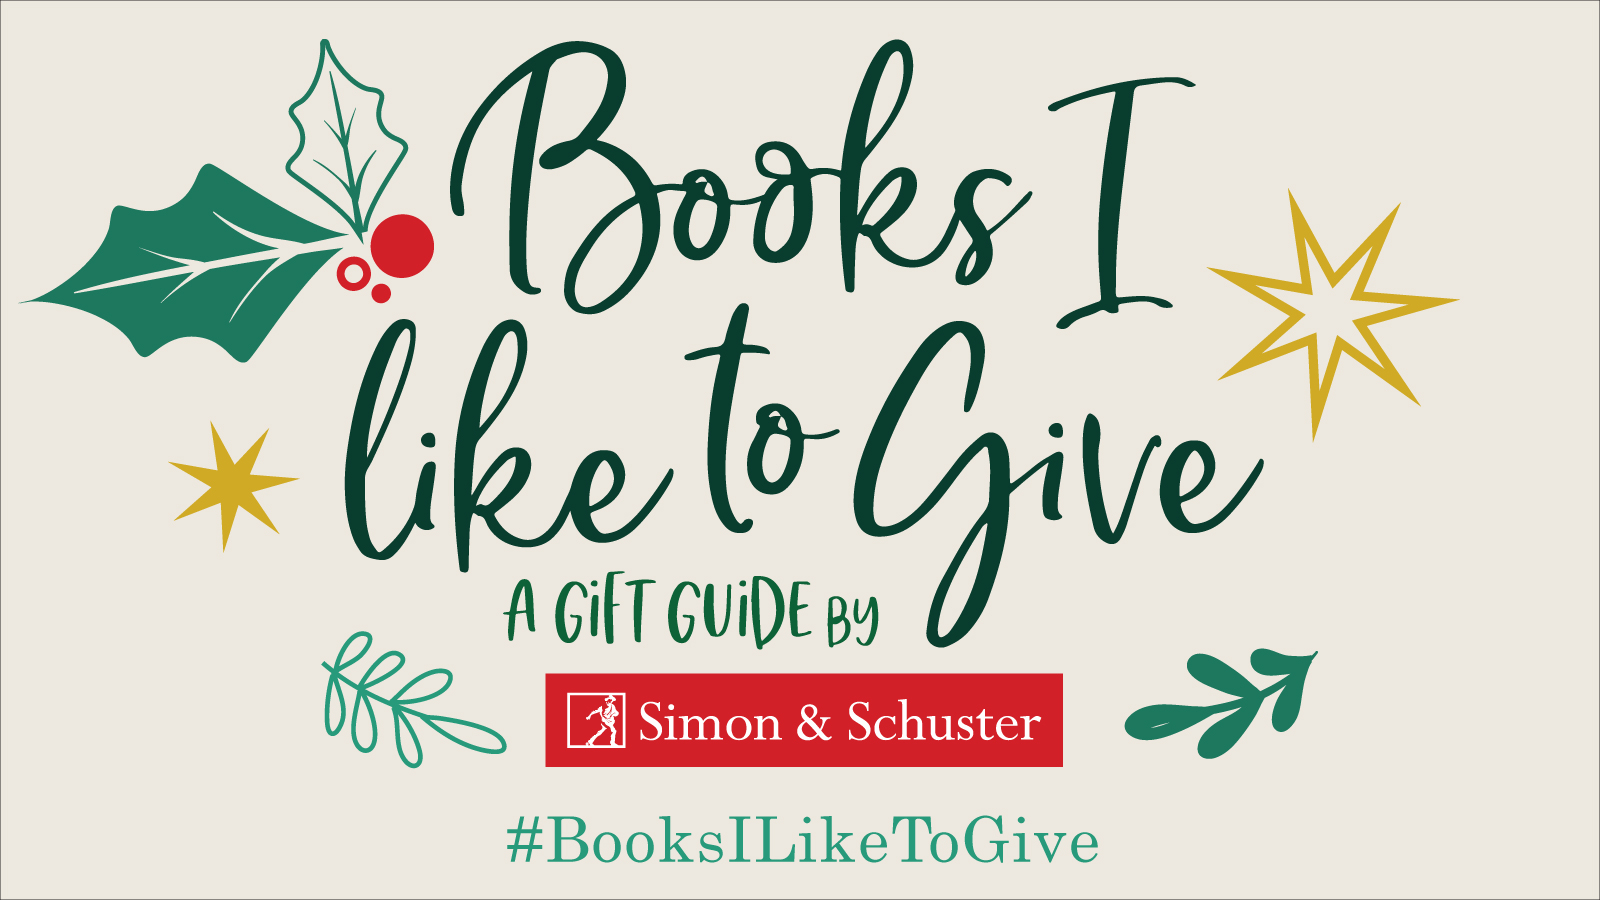 Simon & Schuster Holiday Gift Guide